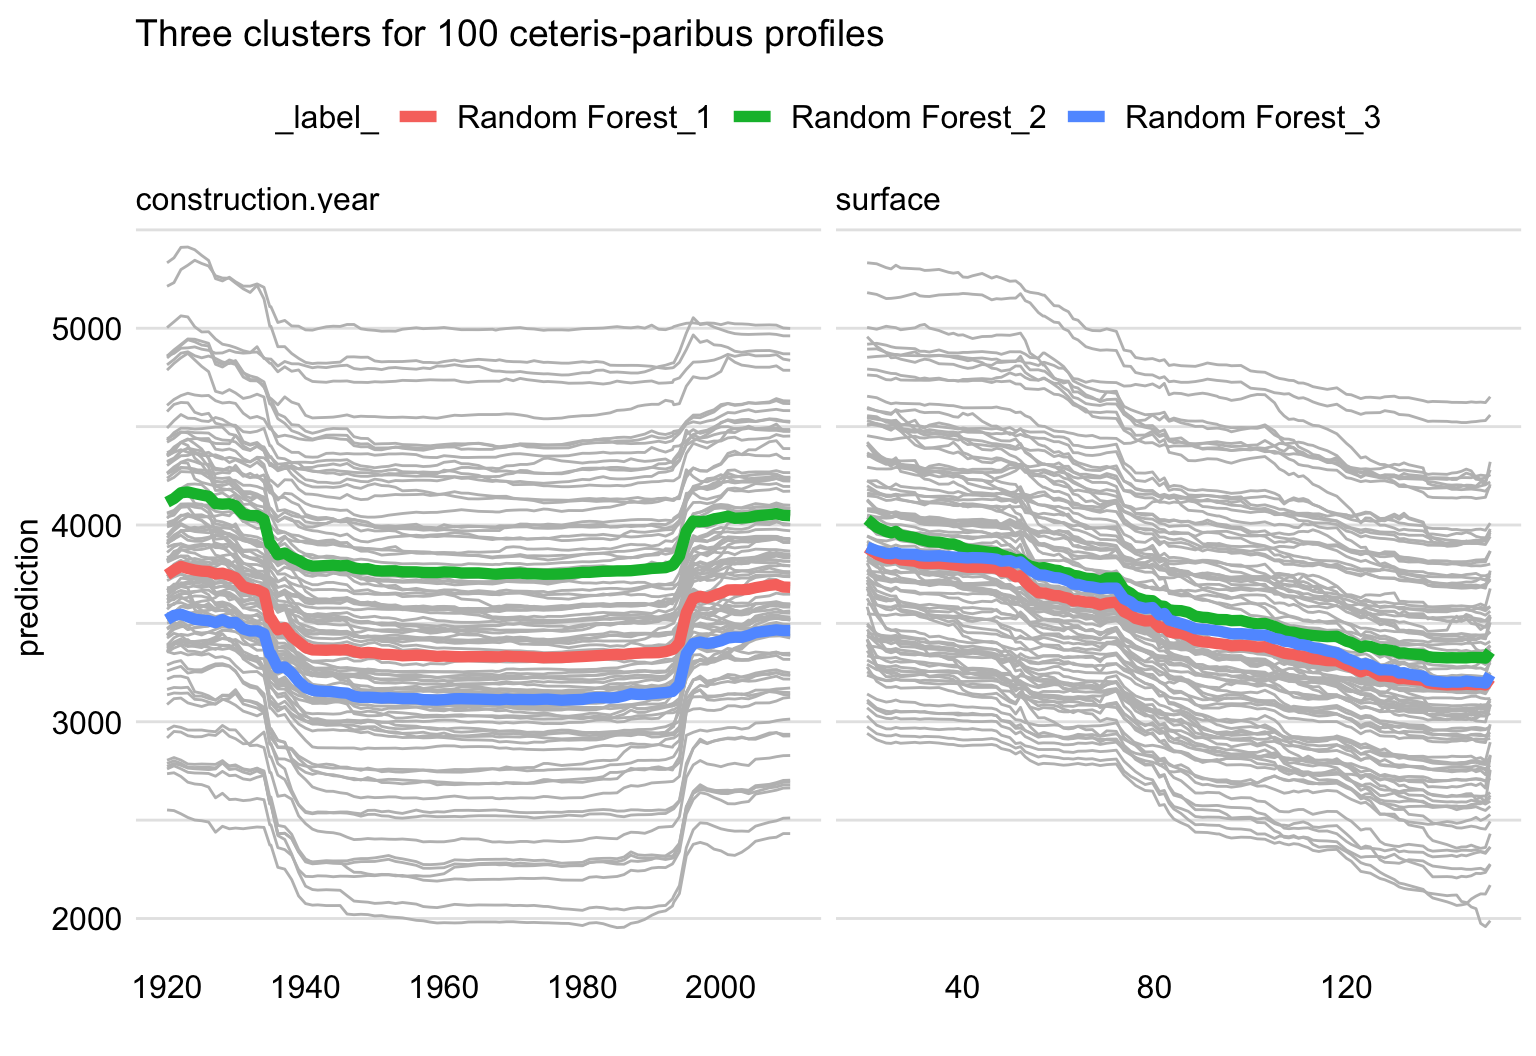 Ceteris-paribus (grey lines) and partial-dependence profiles (red, green, and blue lines) for three clusters for 100 randomly-selected apartments for the random forest model for the apartment-prices dataset. Left-hand-side panel: profiles for construction year. Right-hand-side panel: profiles for surface.